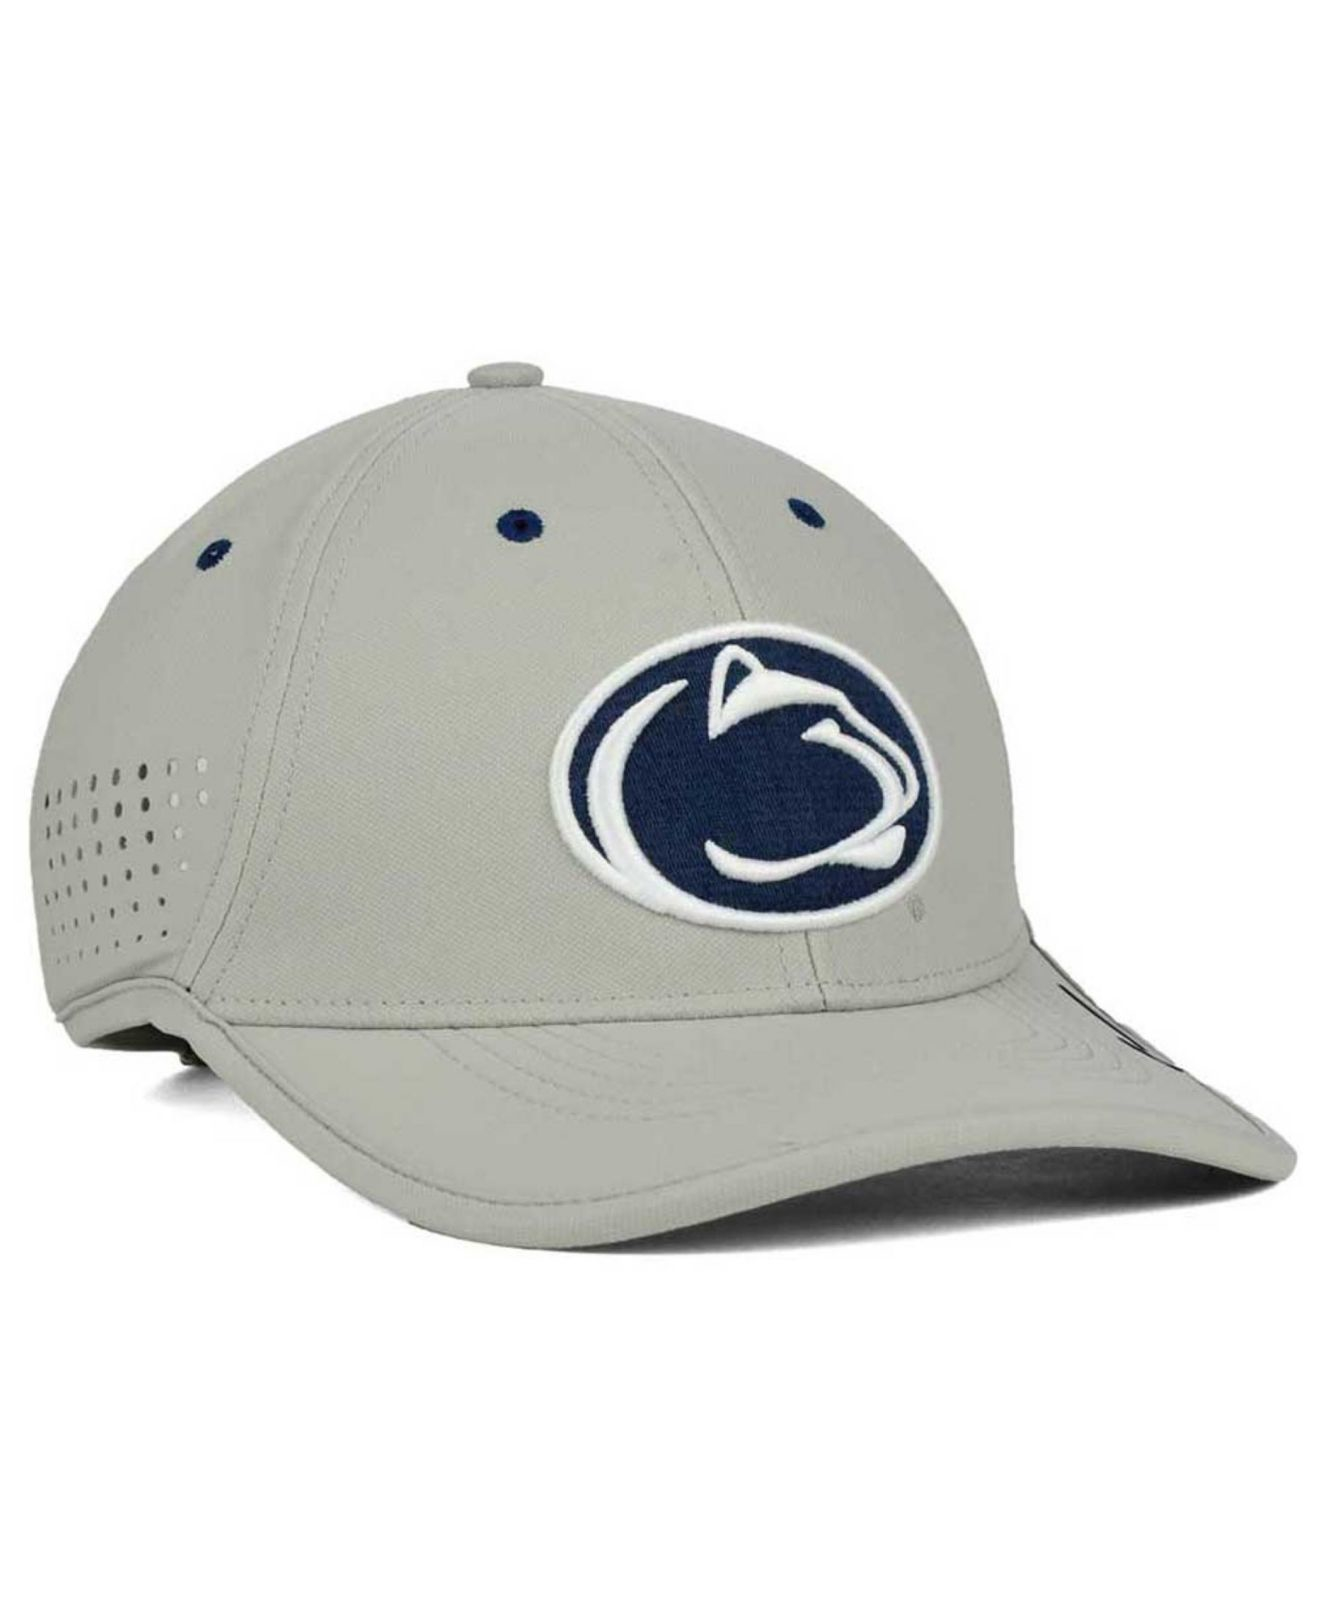 ccd7d0cbfd495 ... where to buy lyst nike penn state nittany lions dri fit coaches cap in  gray for